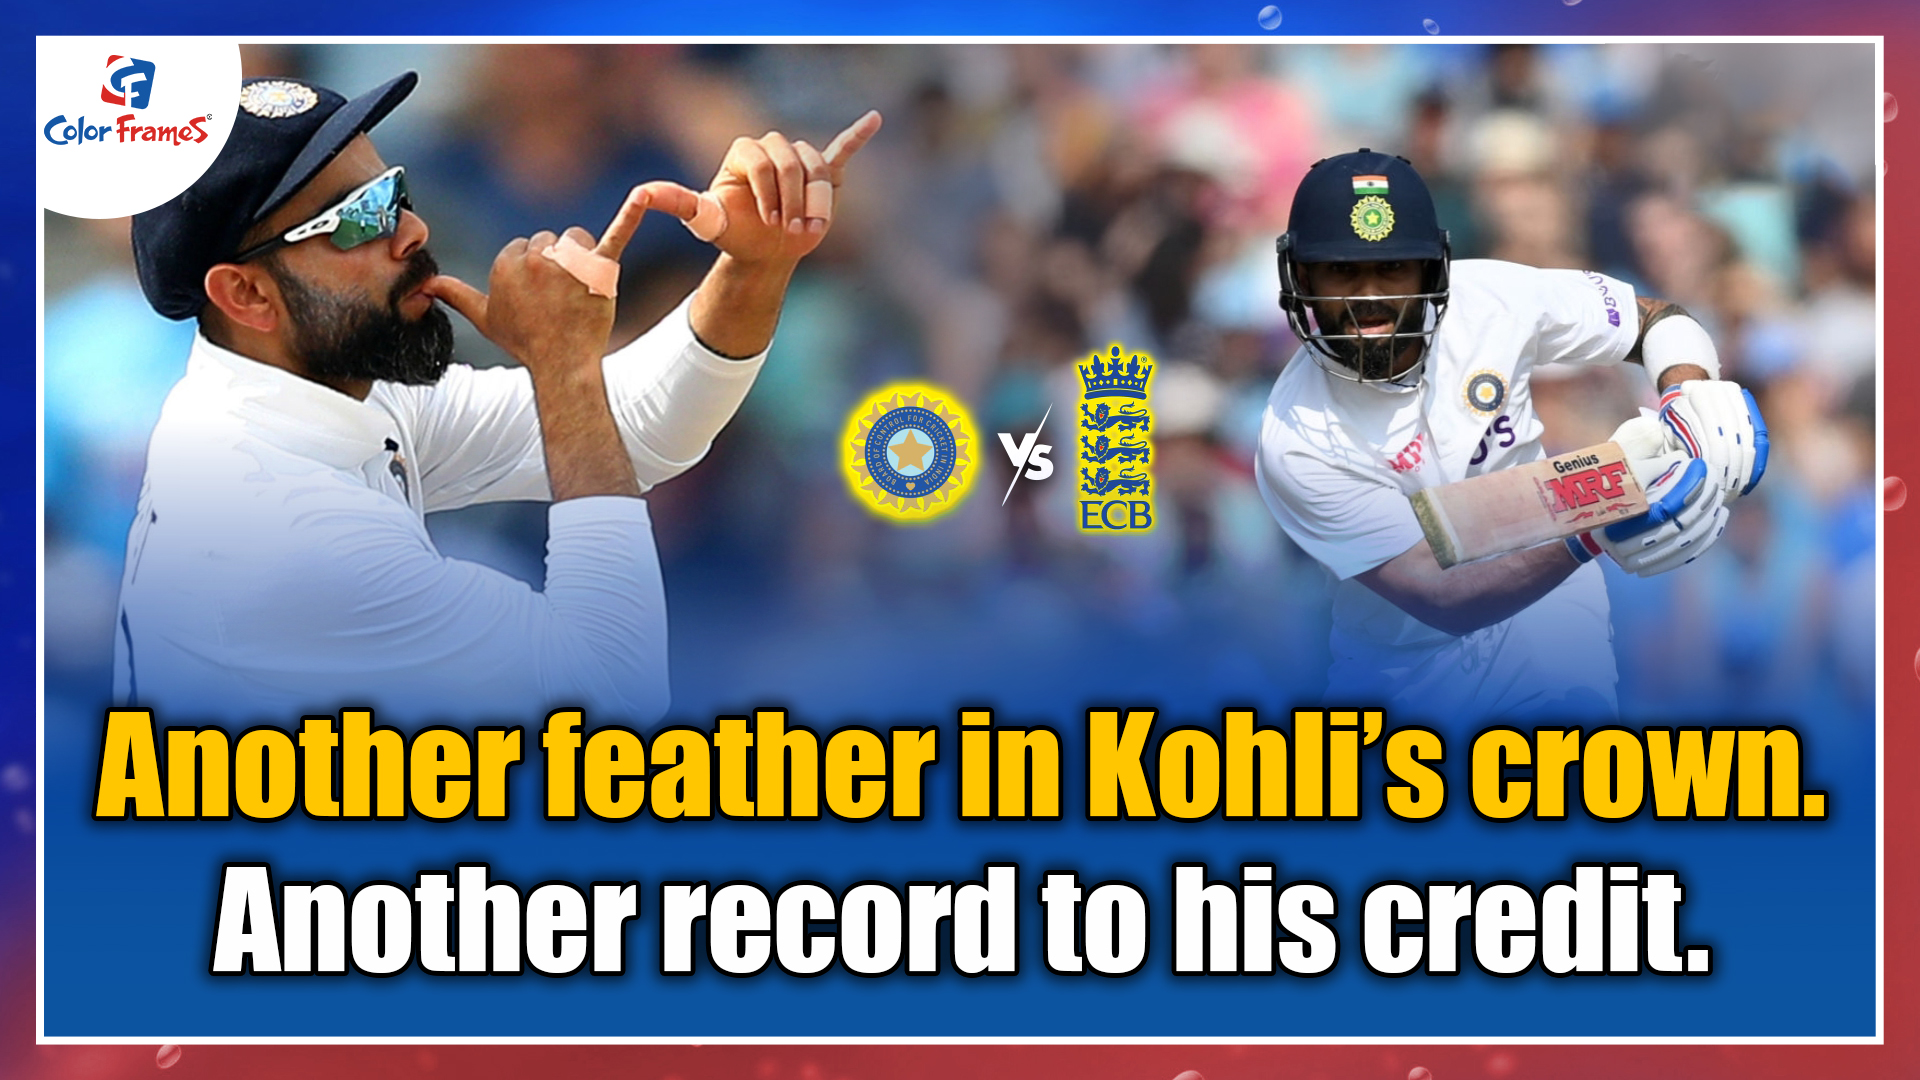 Another feather in Kohli's crown. Another record to his credit.